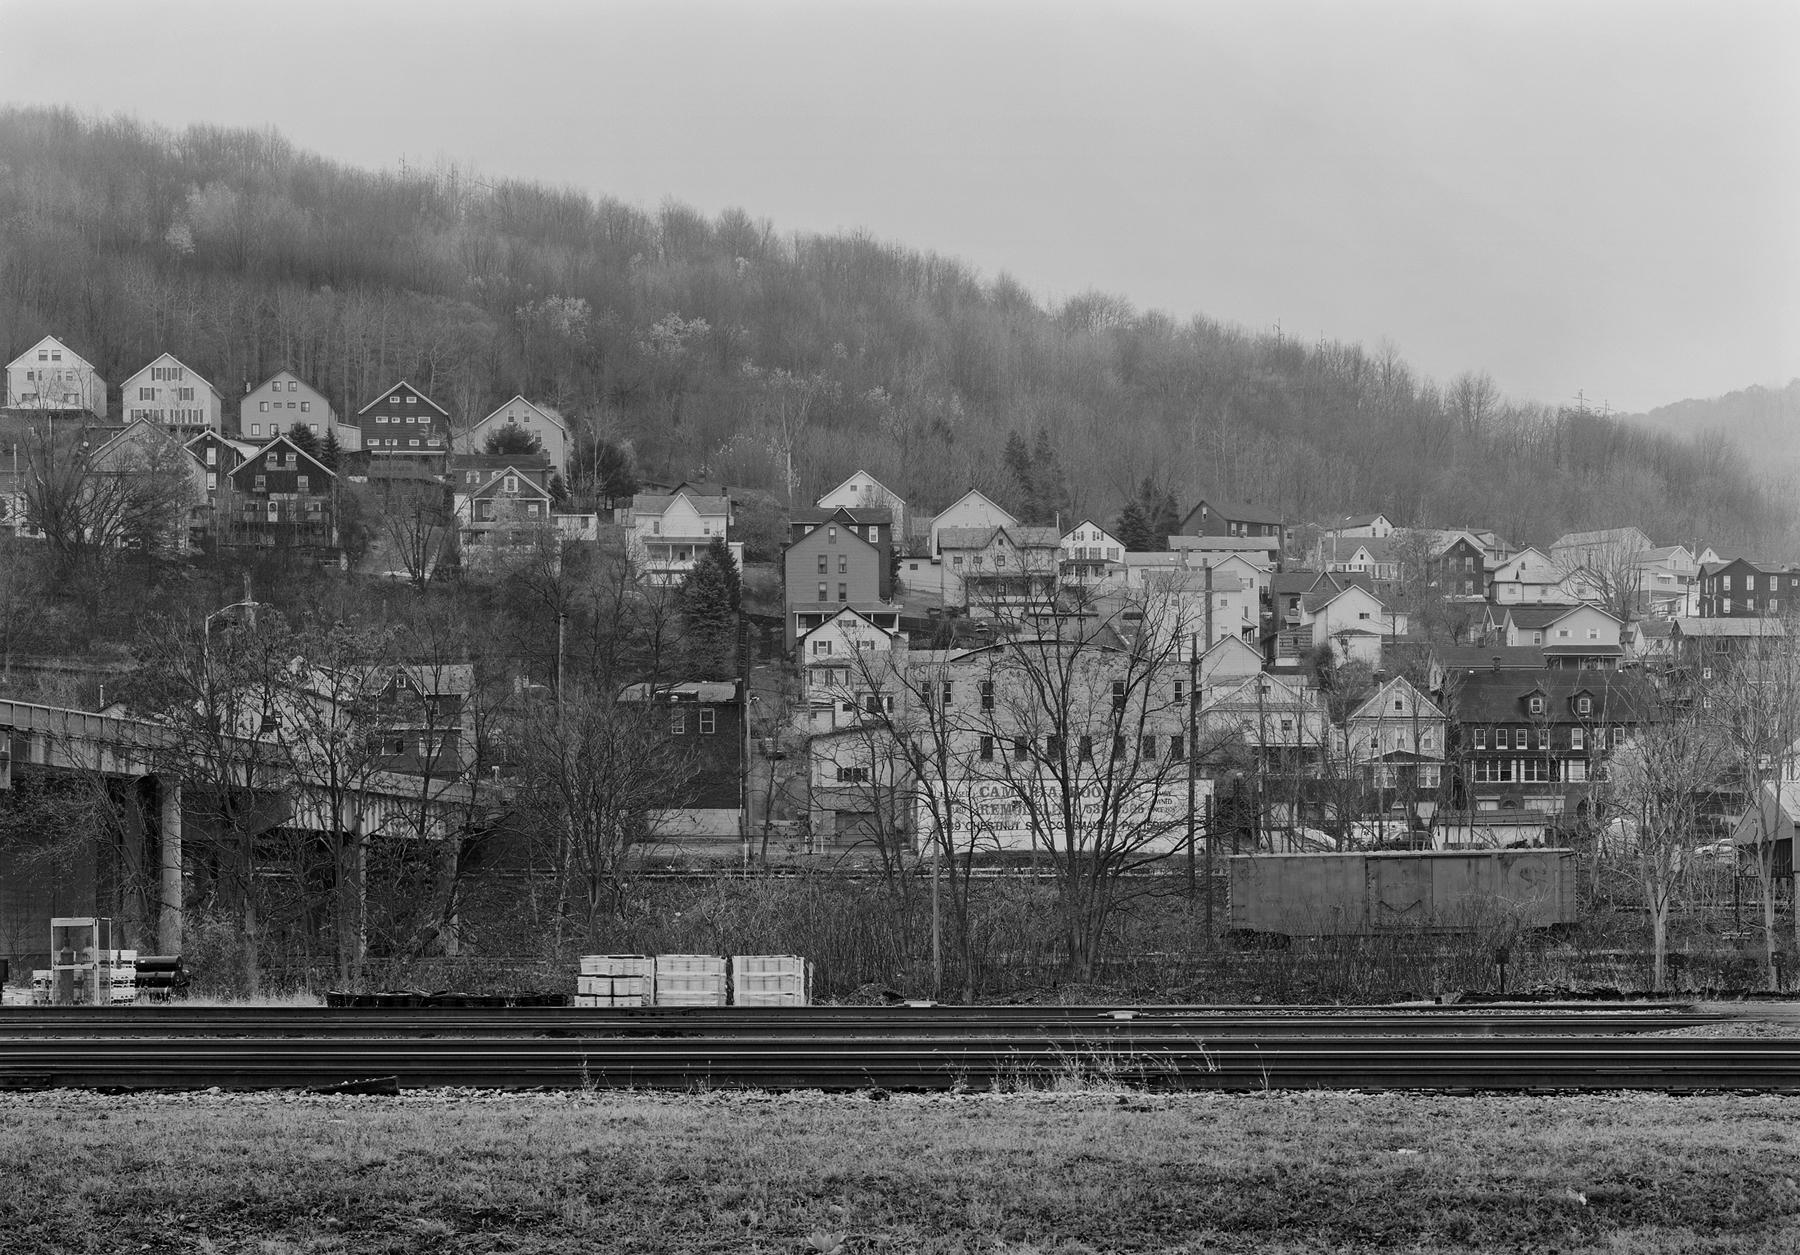 View of the former Pennsylvania Railroad Main Line and East Franklin from Conemaugh, Pennsylvania.